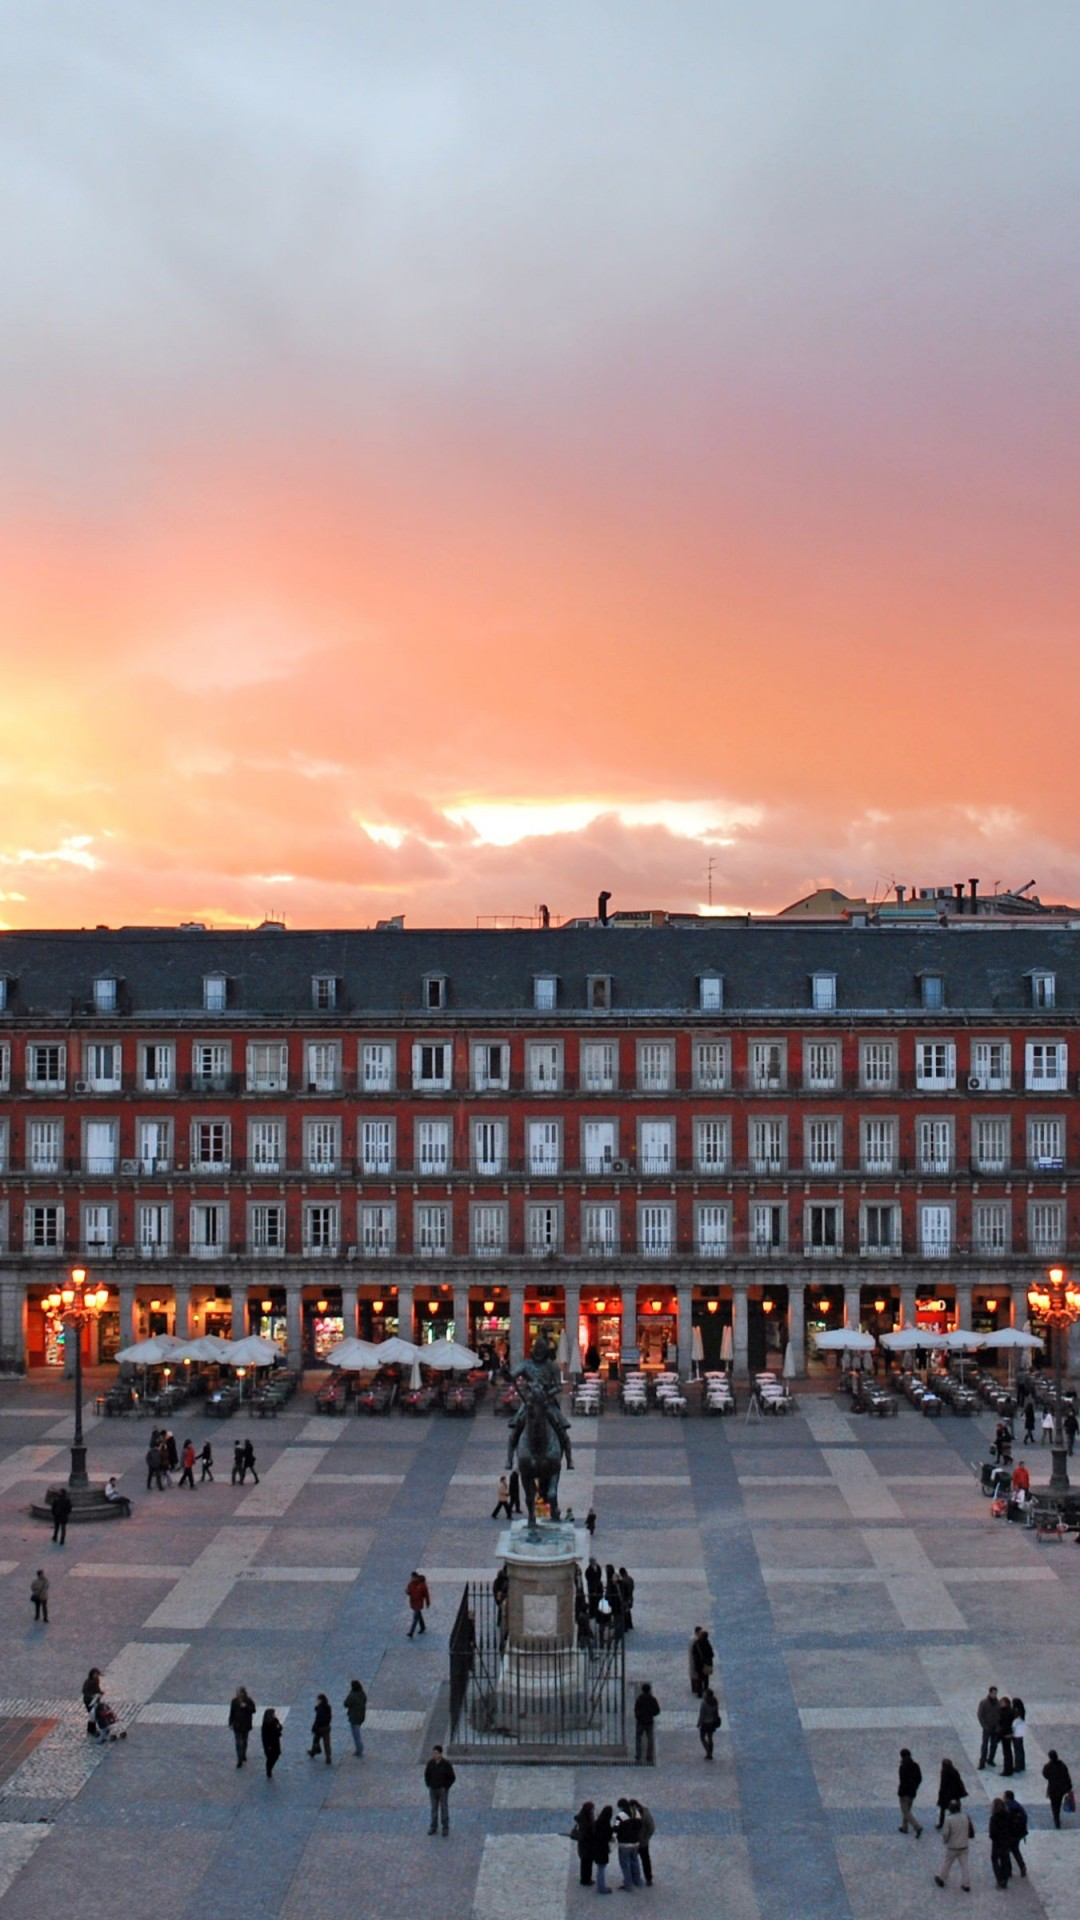 Plaza Mayor, Madrid, Spain Wallpaper for Google Nexus 5X